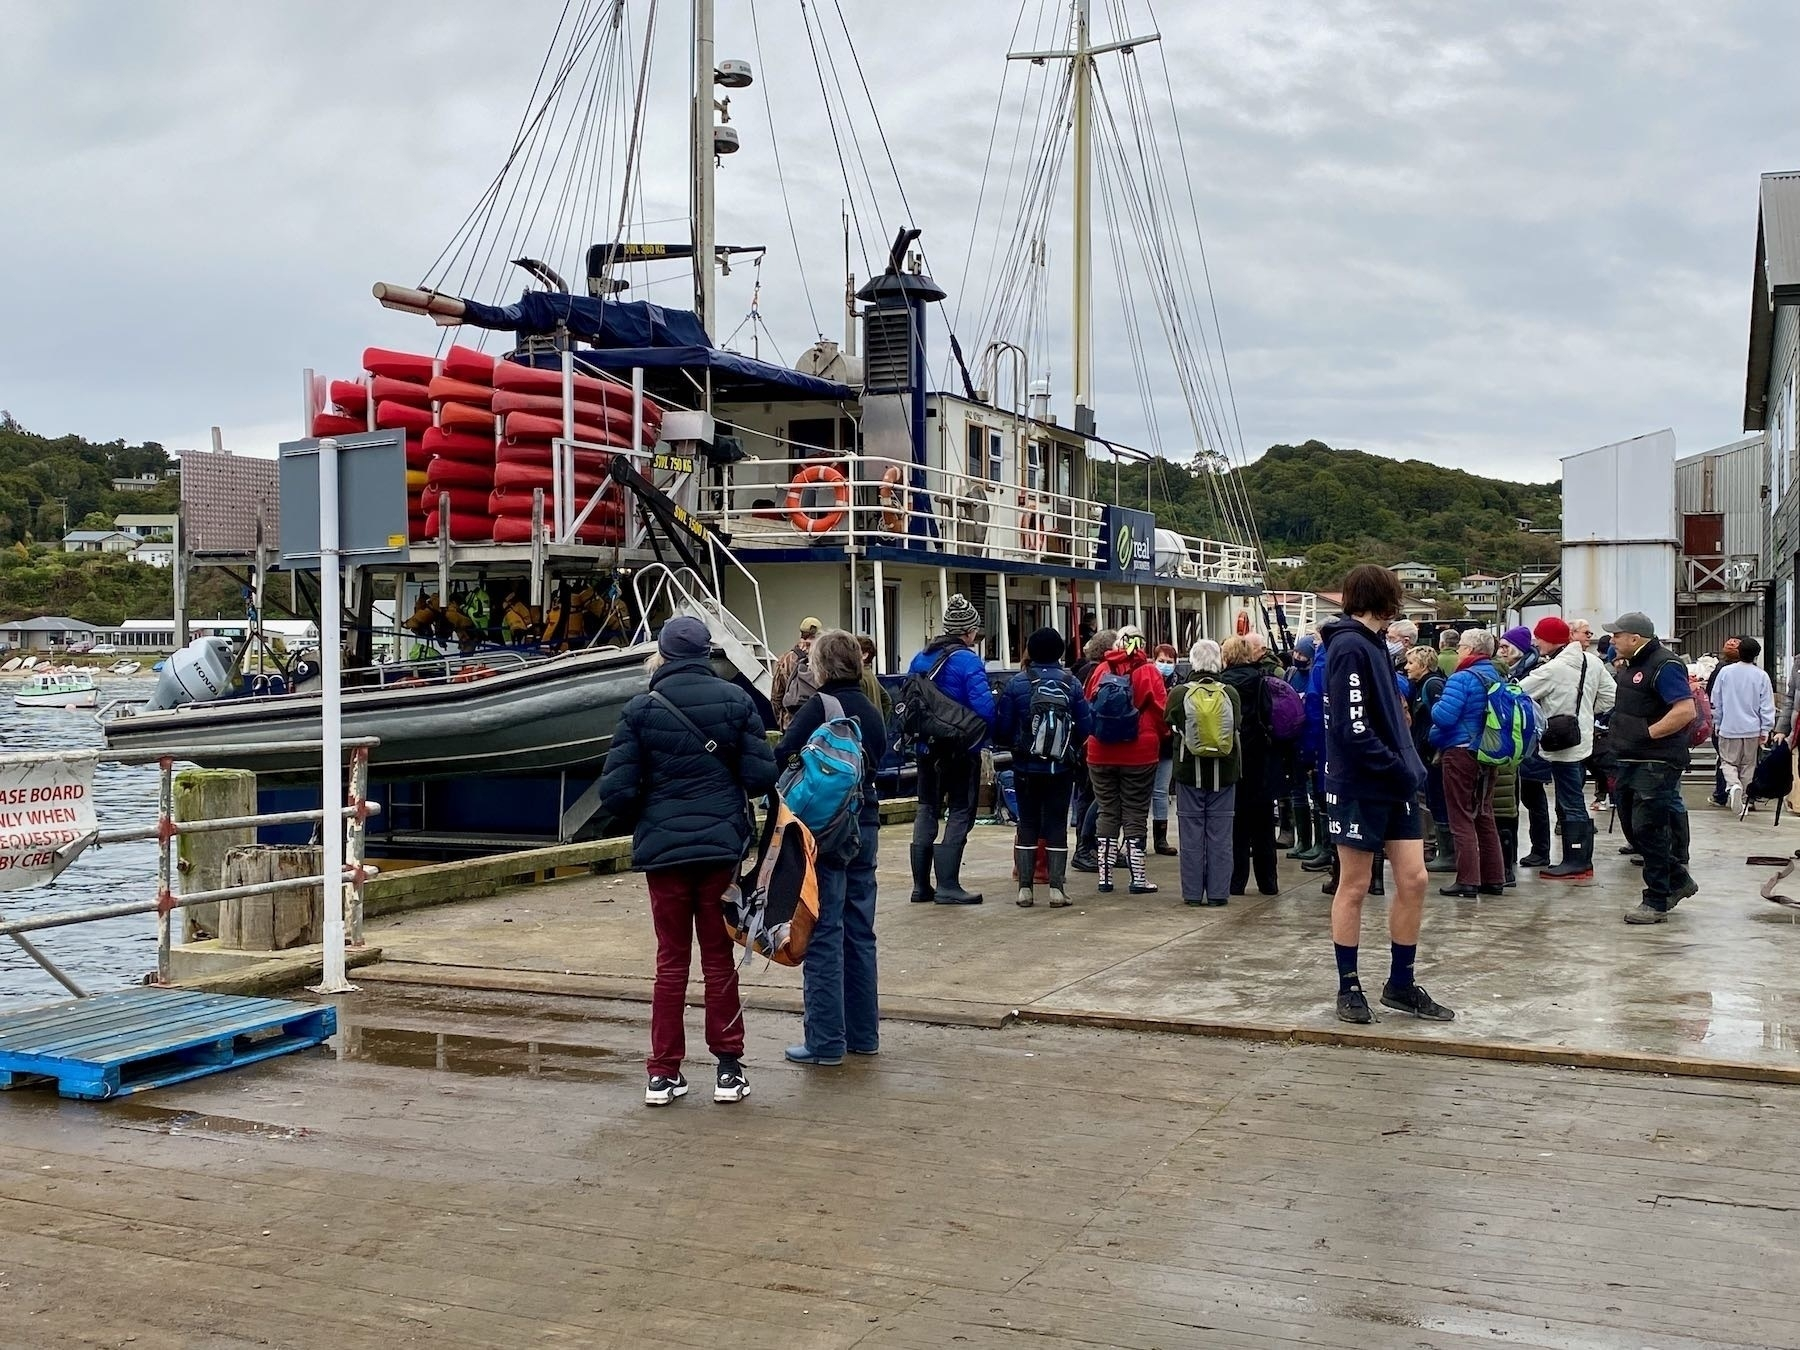 A dock with people on it with the Milford Wanderer behind them and the tender hanging from the stern.